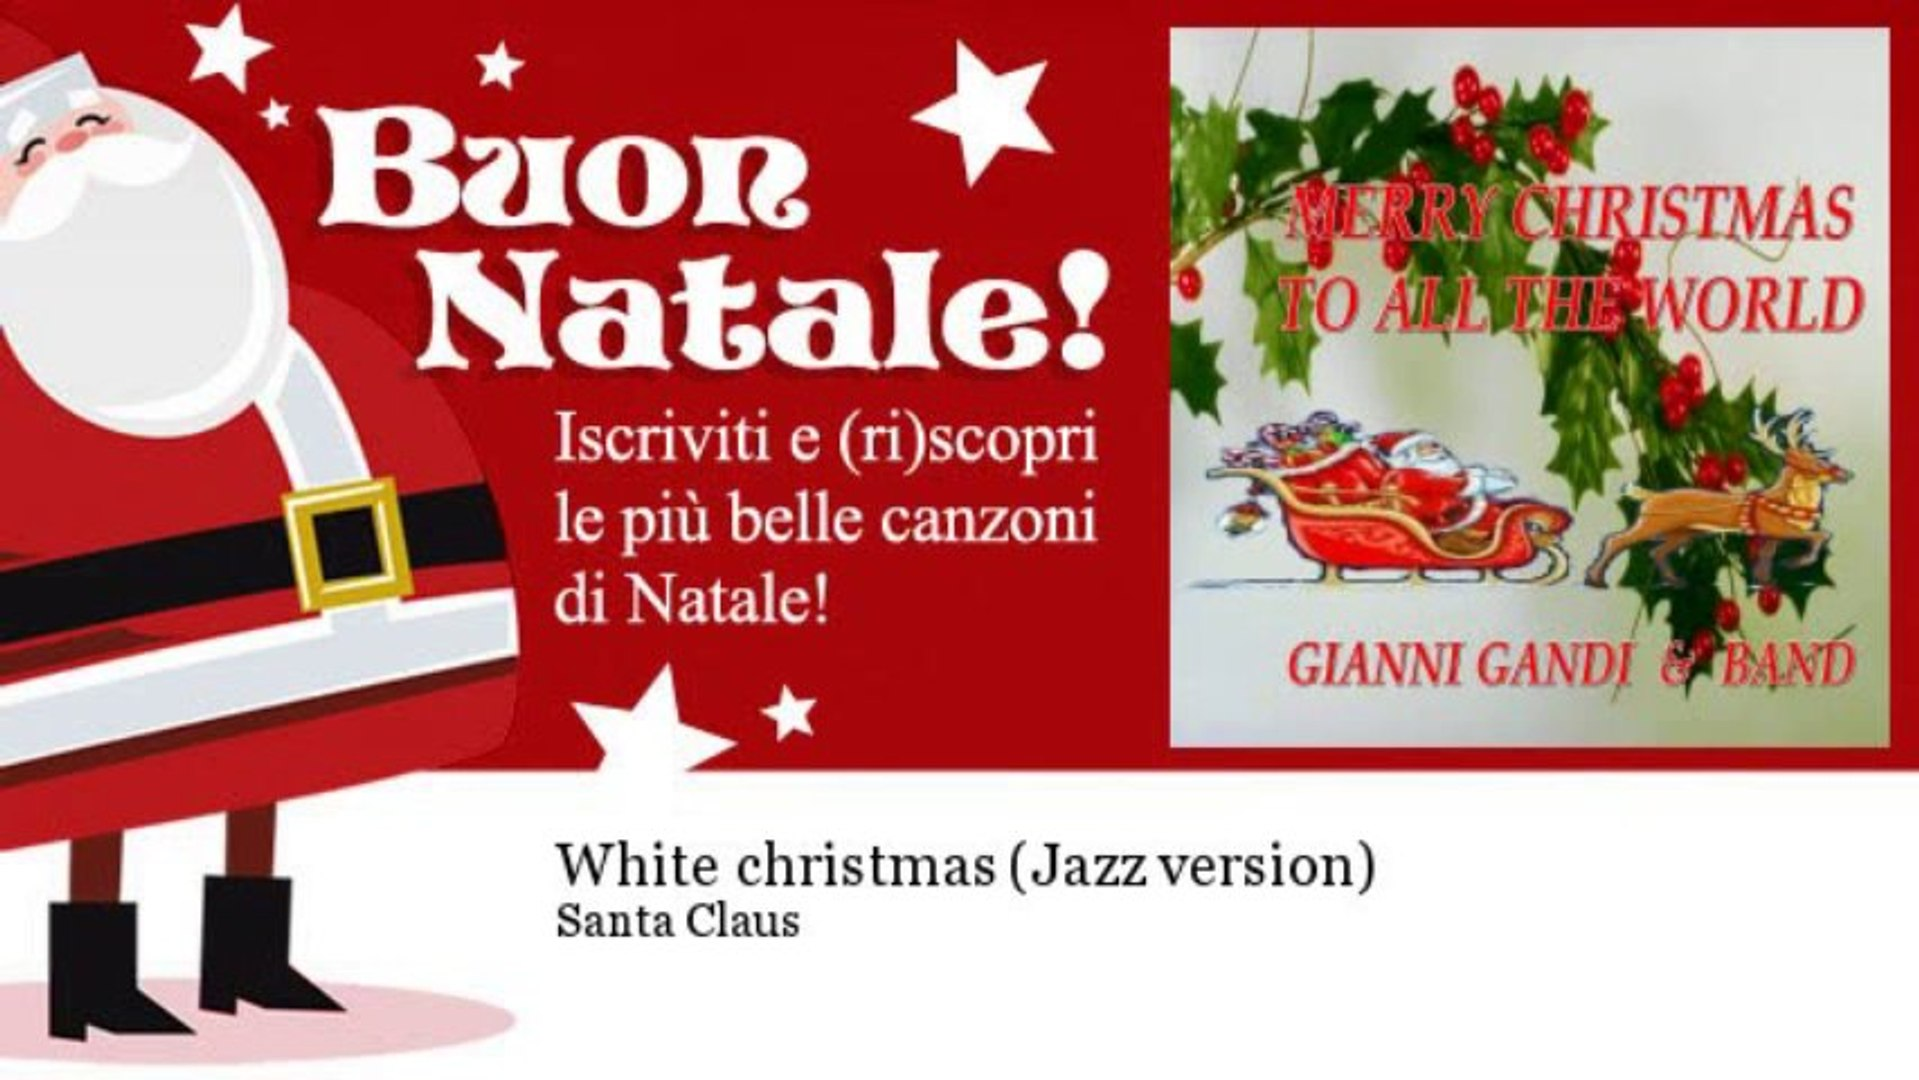 Santa Claus - White christmas - Jazz version